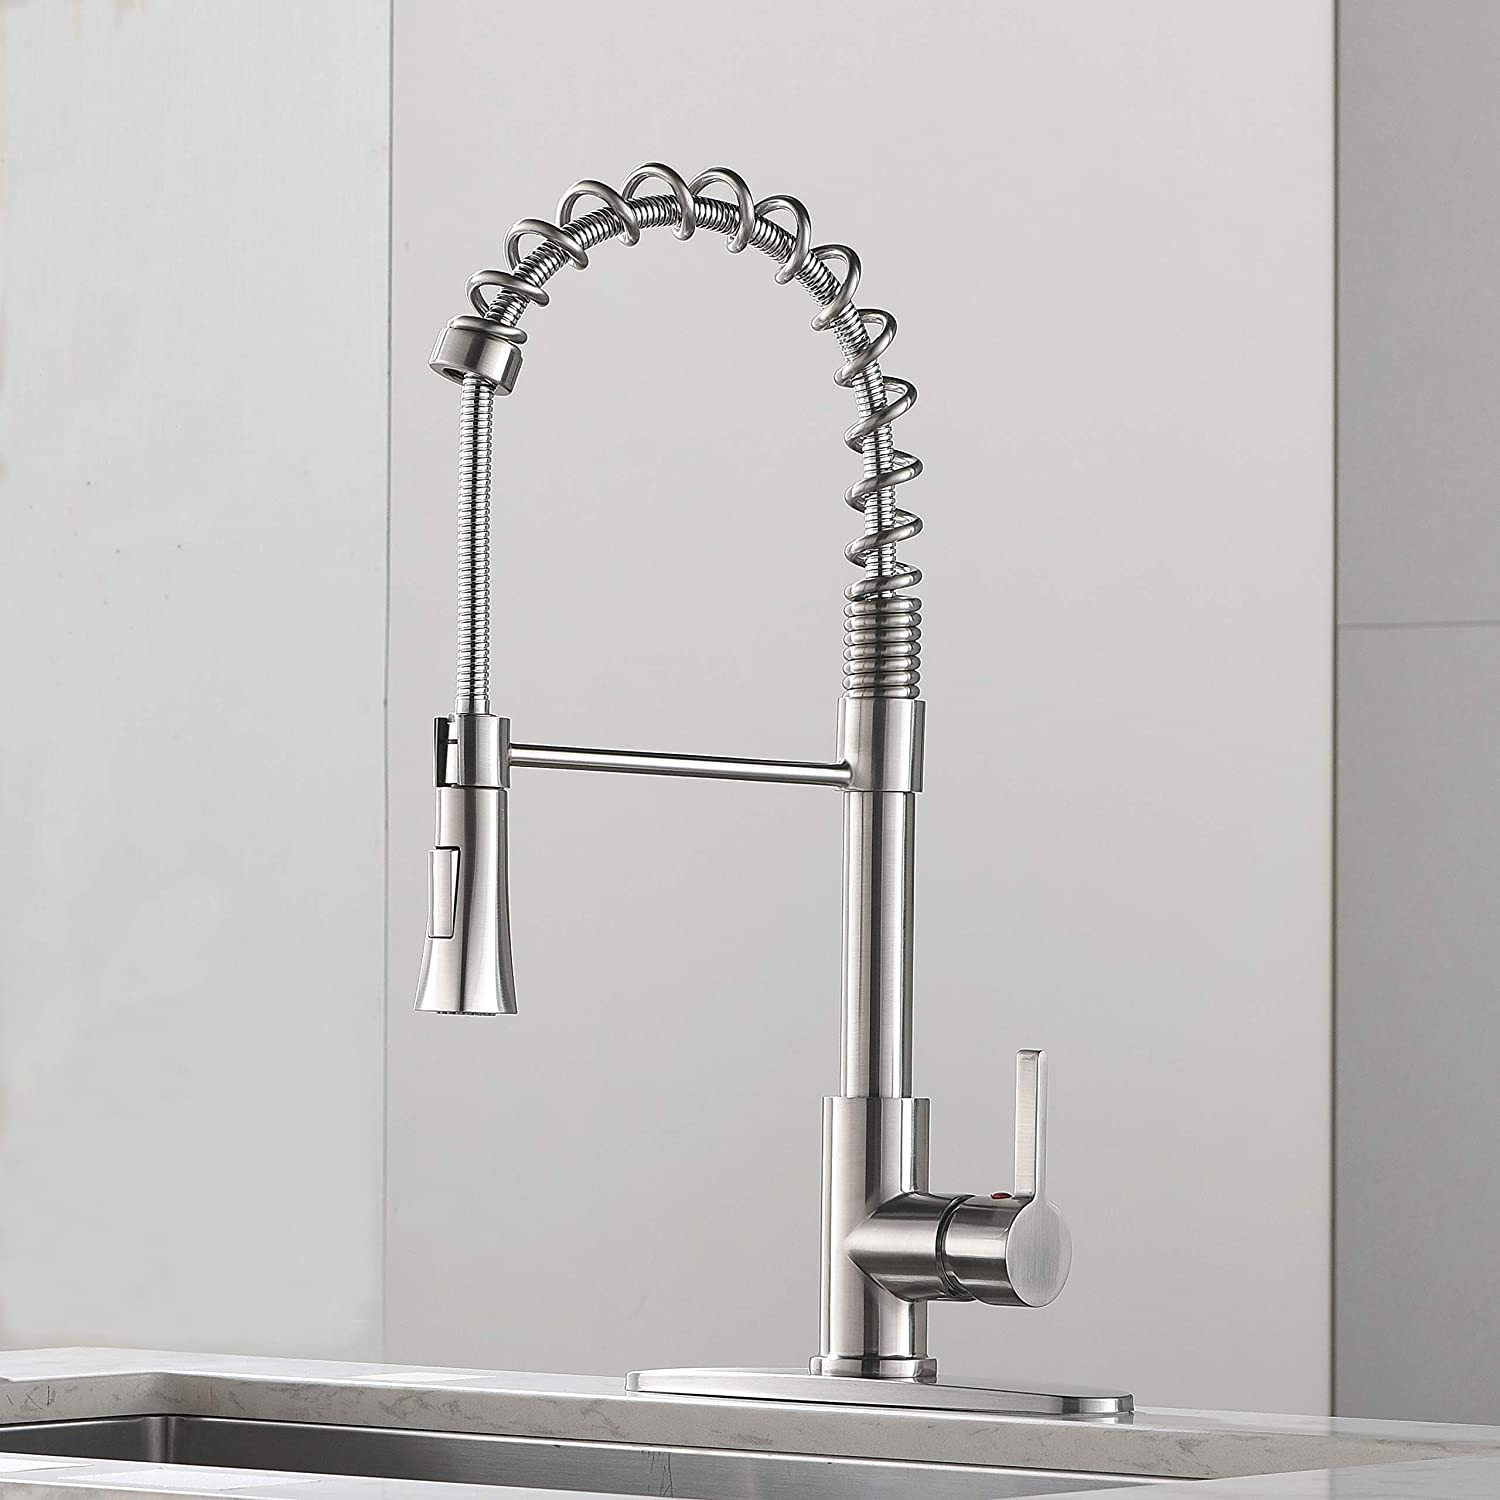 VAPSINT Modern Commercial Lead Free Spring Pull Down Sprayer Brushed Nickel Single Handle Kitchen Faucet, Kitchen Sink Faucets with Deck Plate